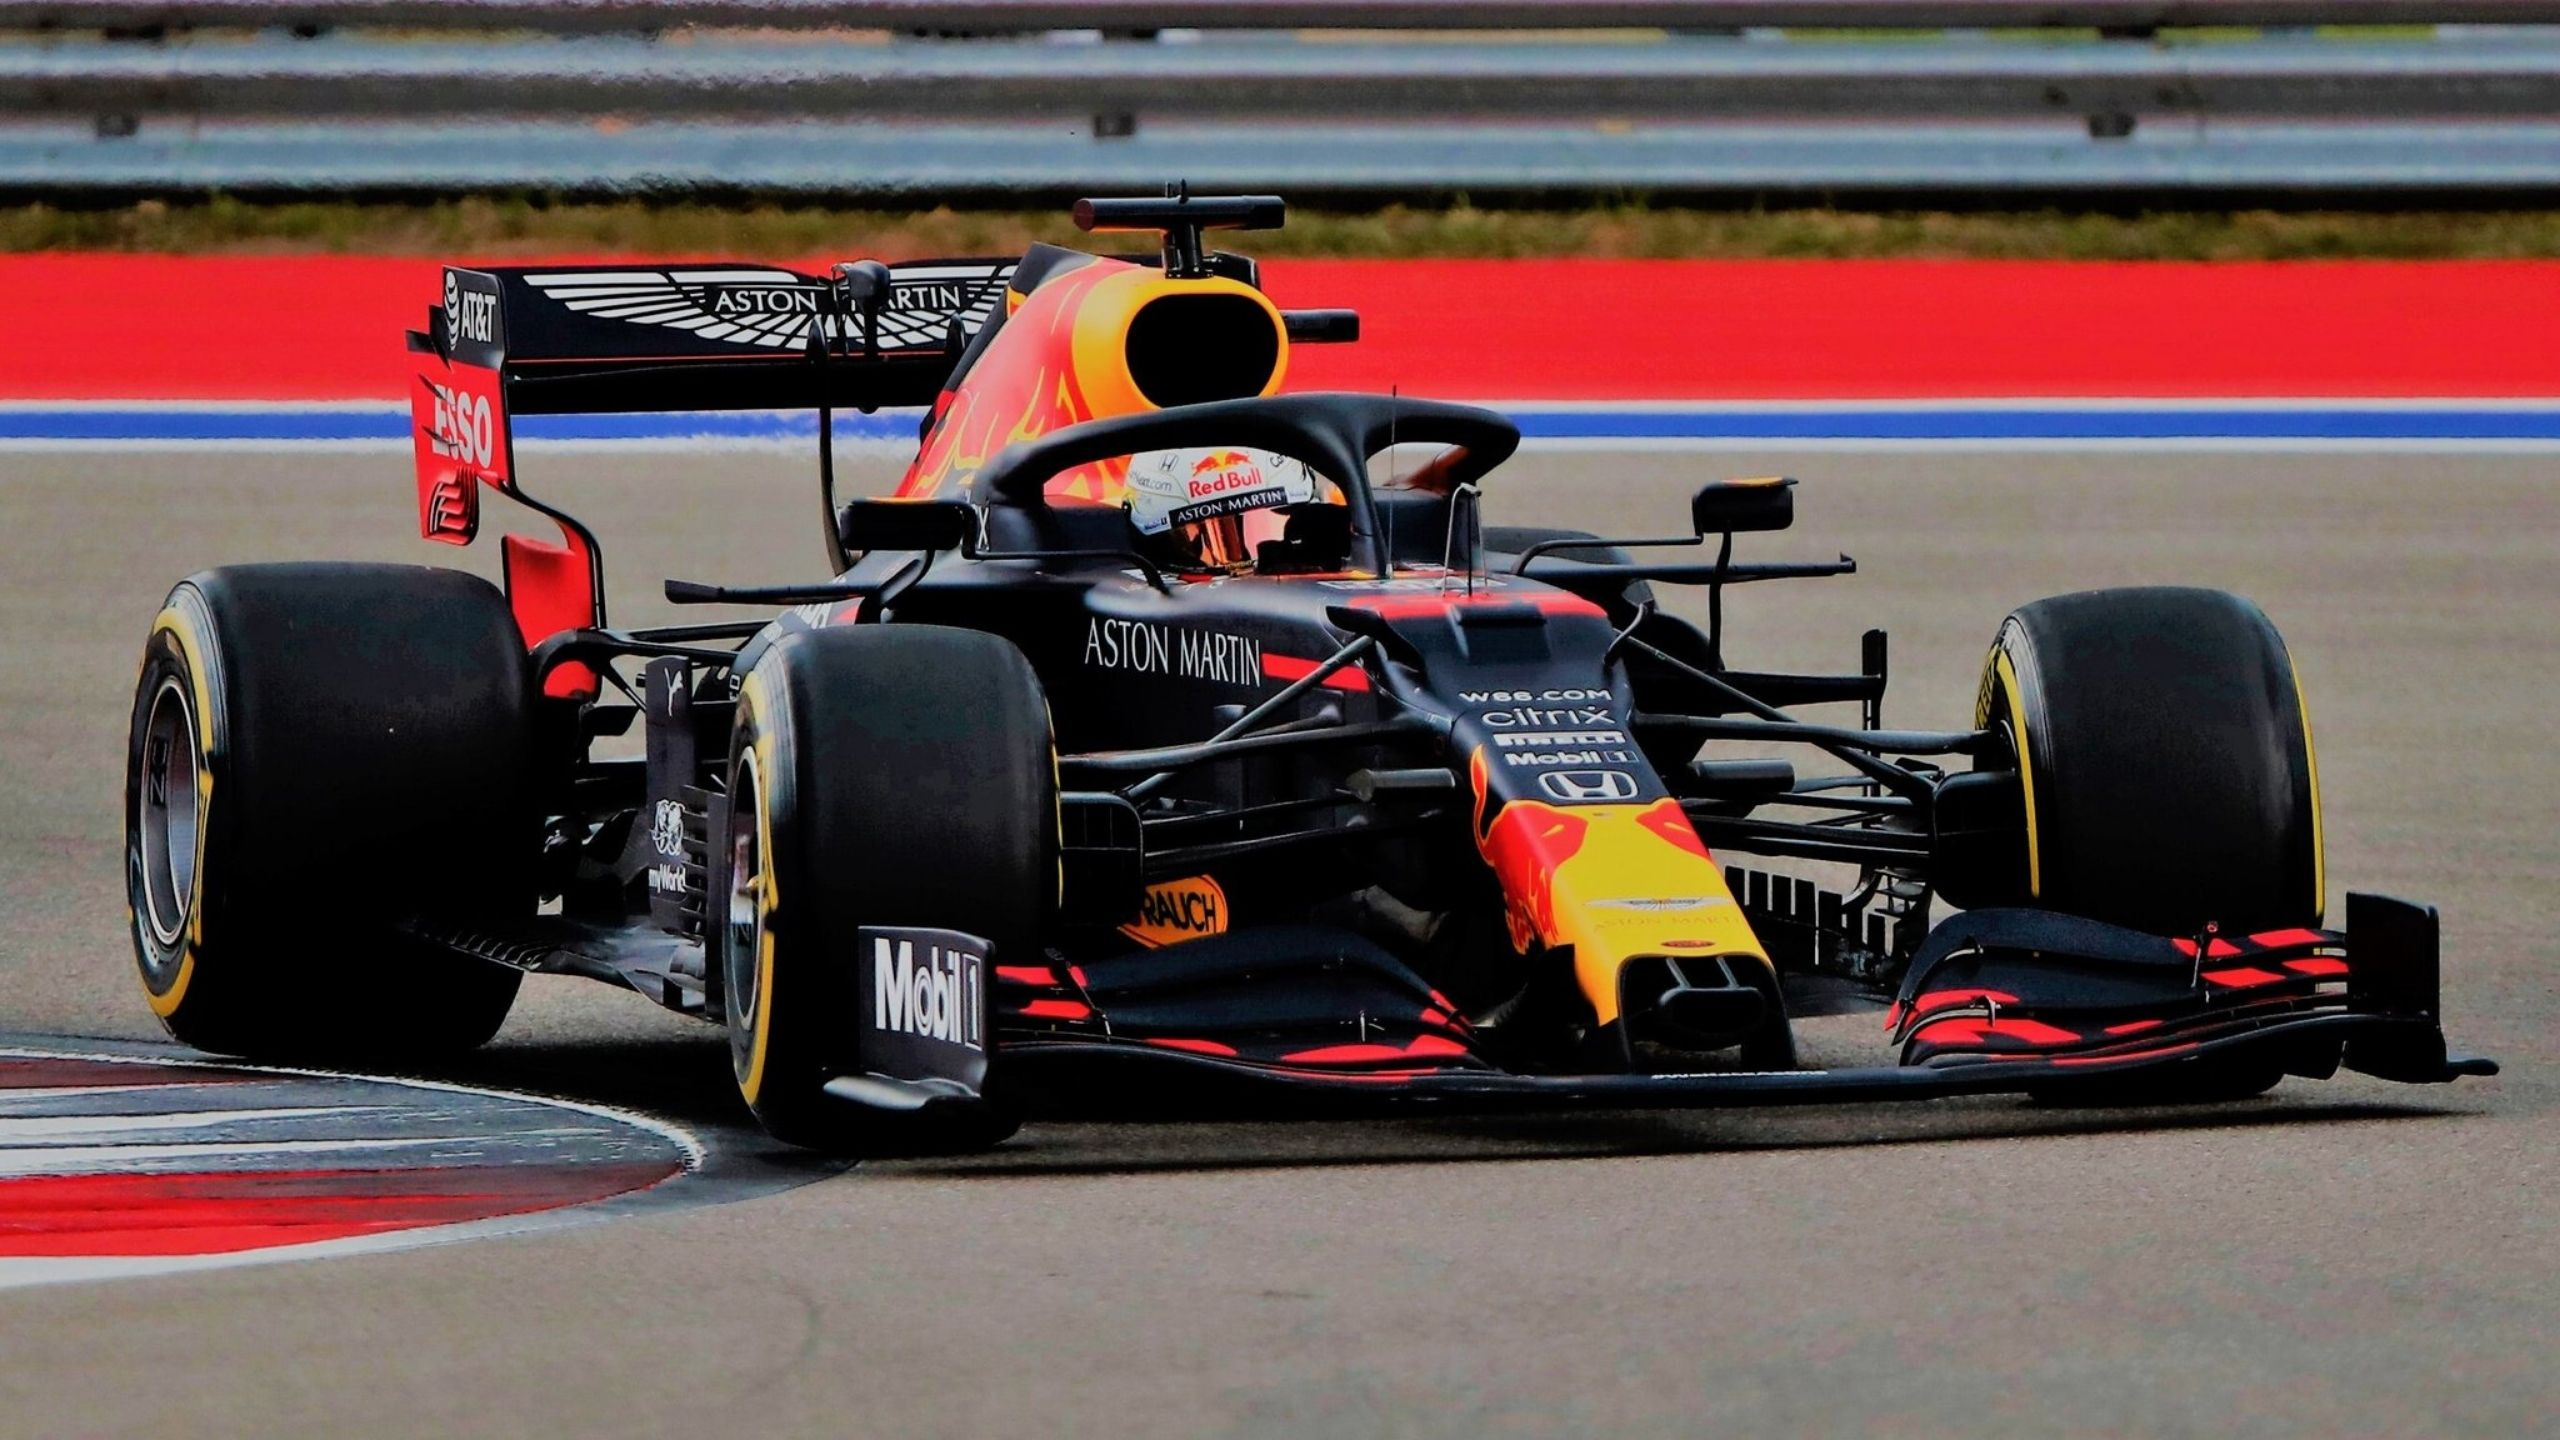 """""""Something broke on the car"""" - Red Bull's Max Verstappen crashes out of the Emilia Romagna Grand Prix at Imola"""